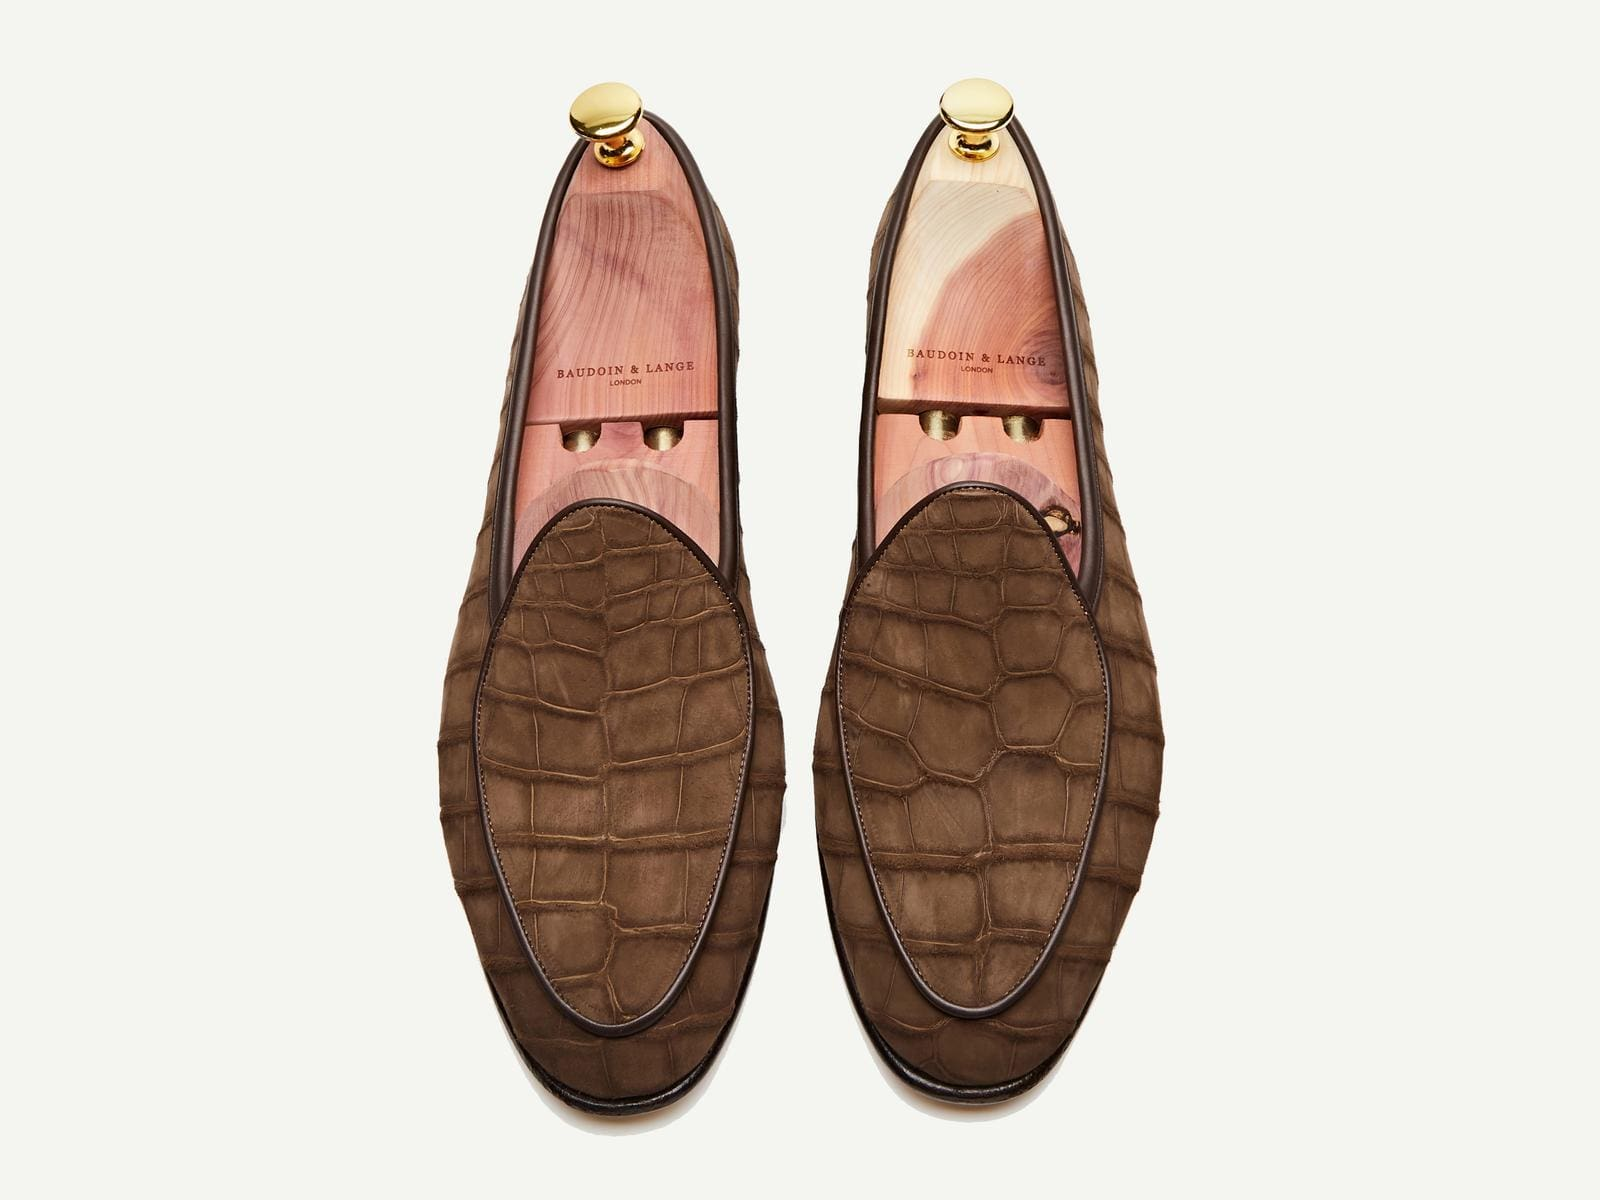 Sagan Classic Precious Leathers in Tan Nubuck Alligator